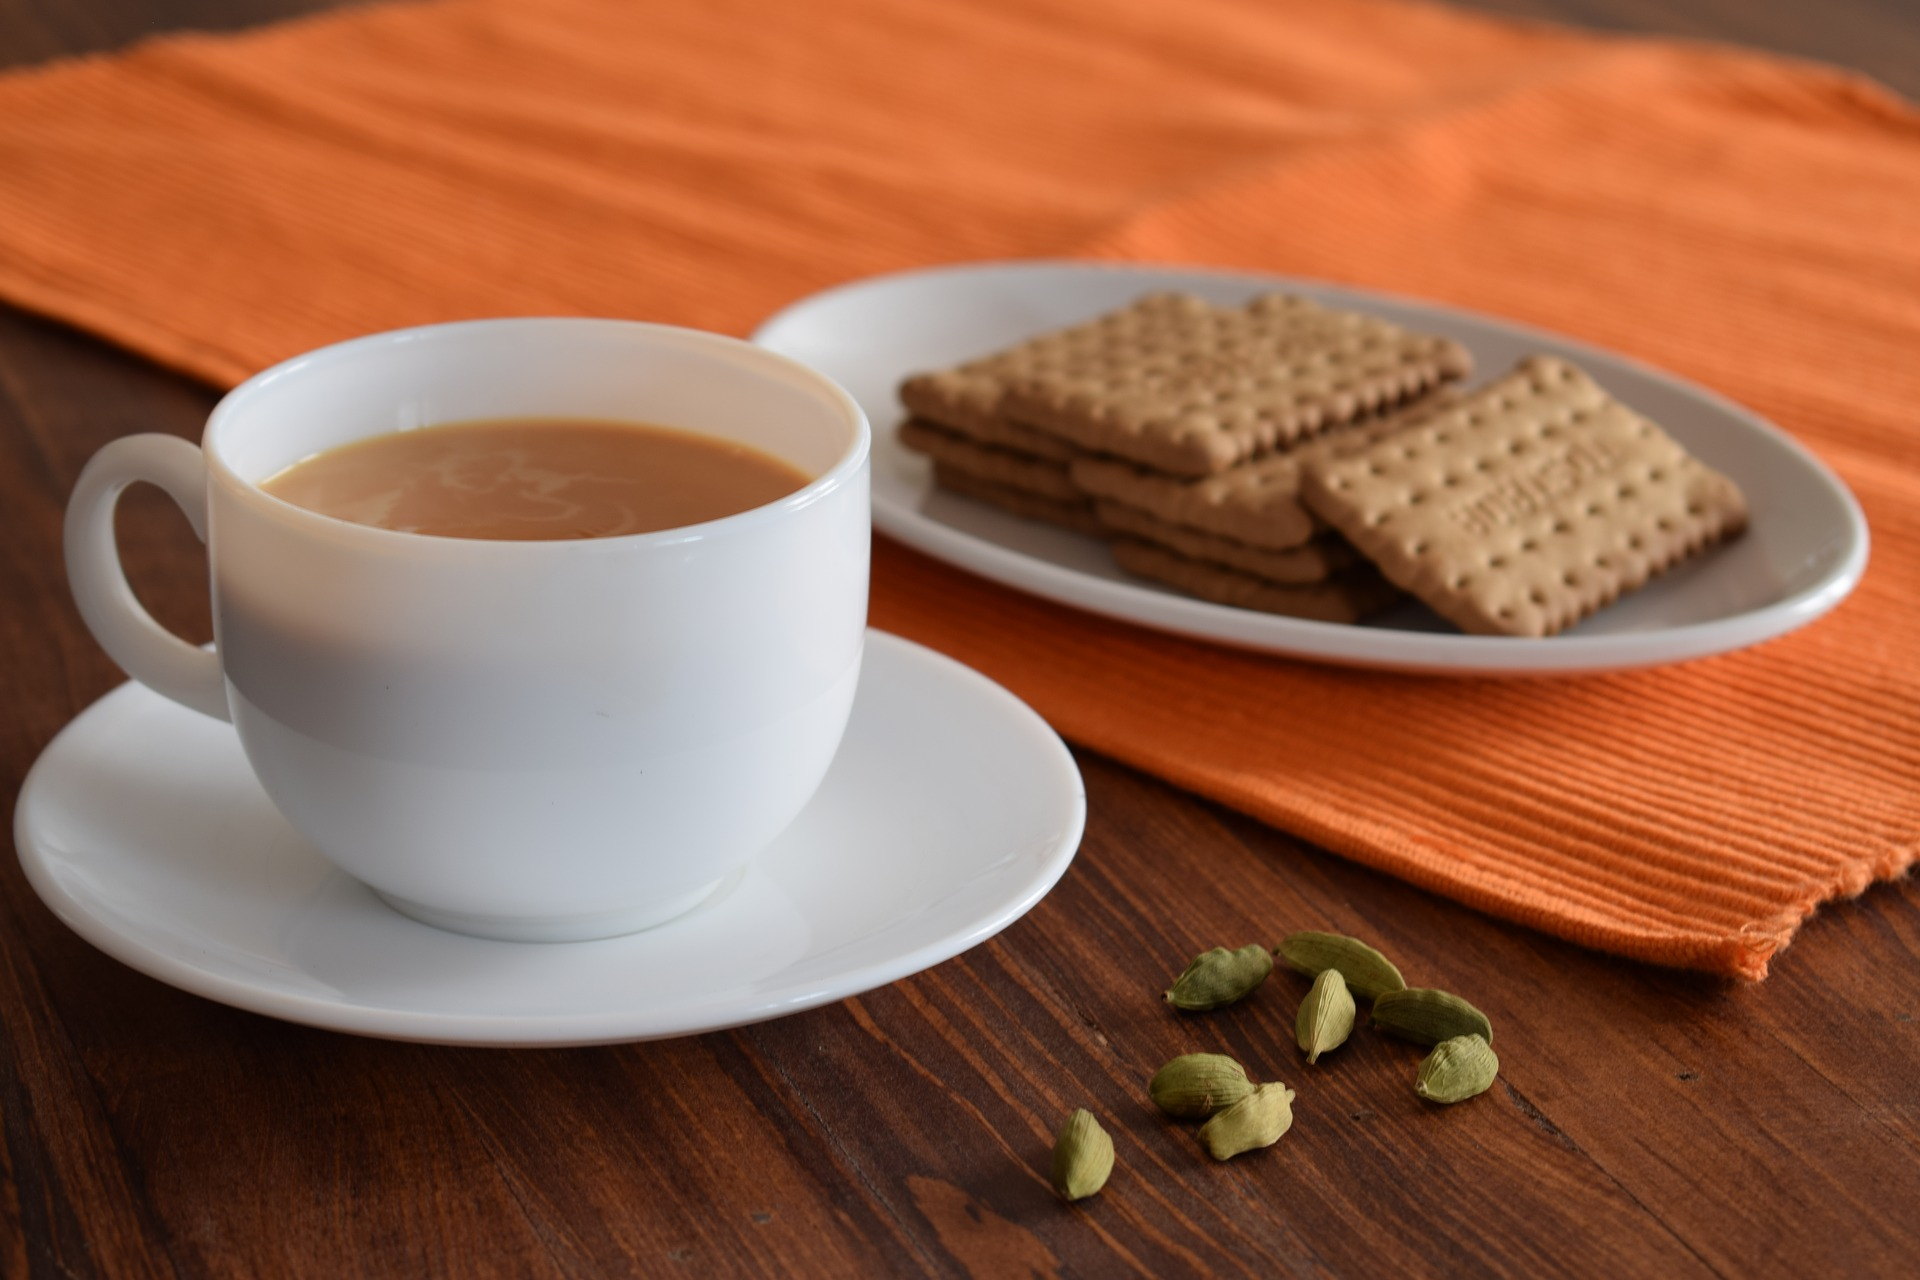 Do you drink tea on an empty stomach in the morning?